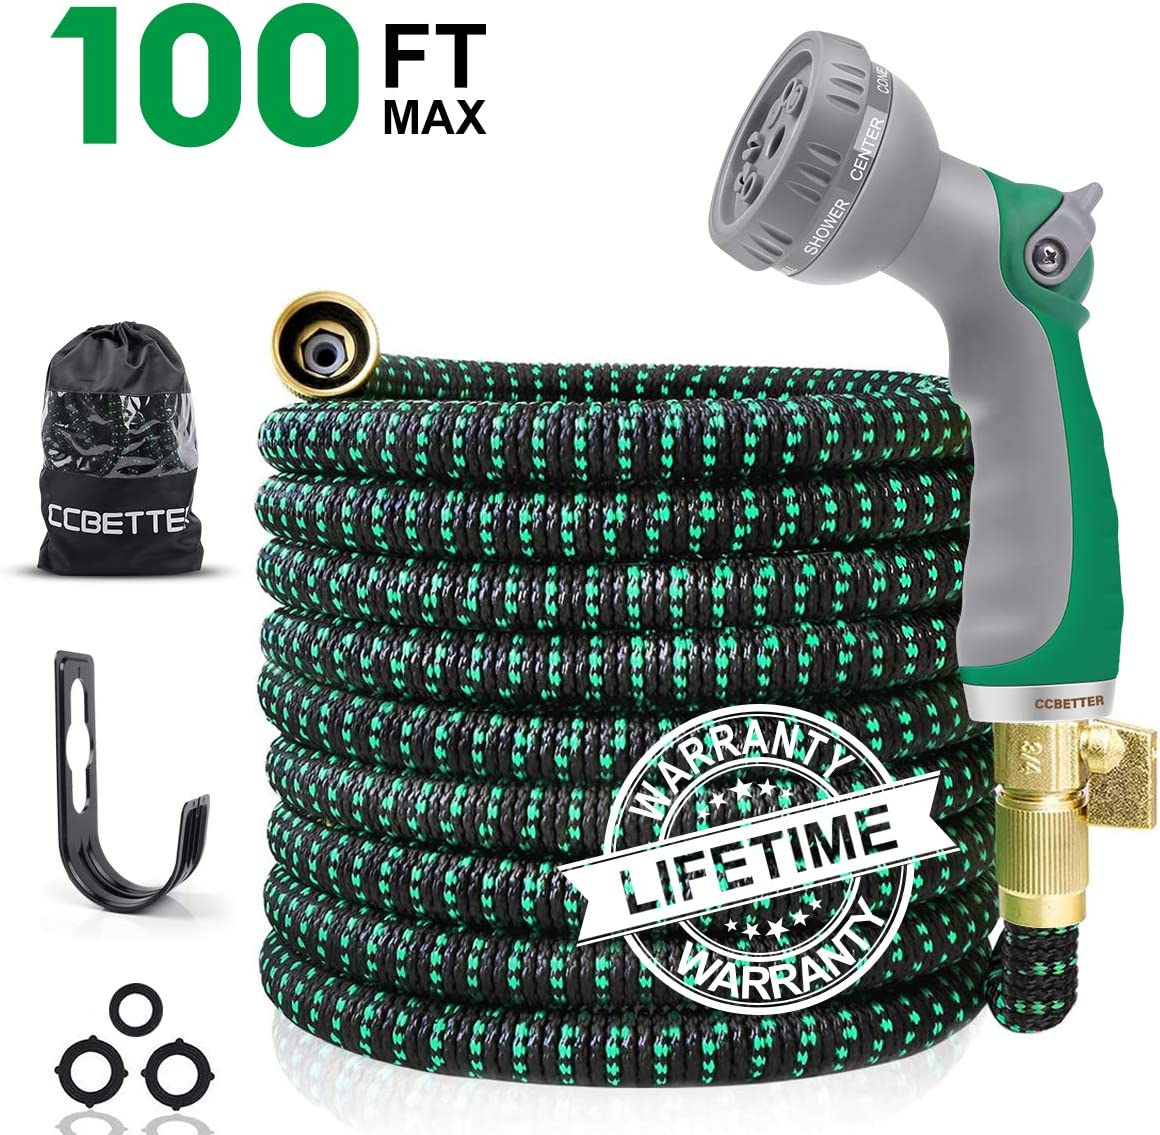 CCBETTER 100ft Garden Hose Leak Proof